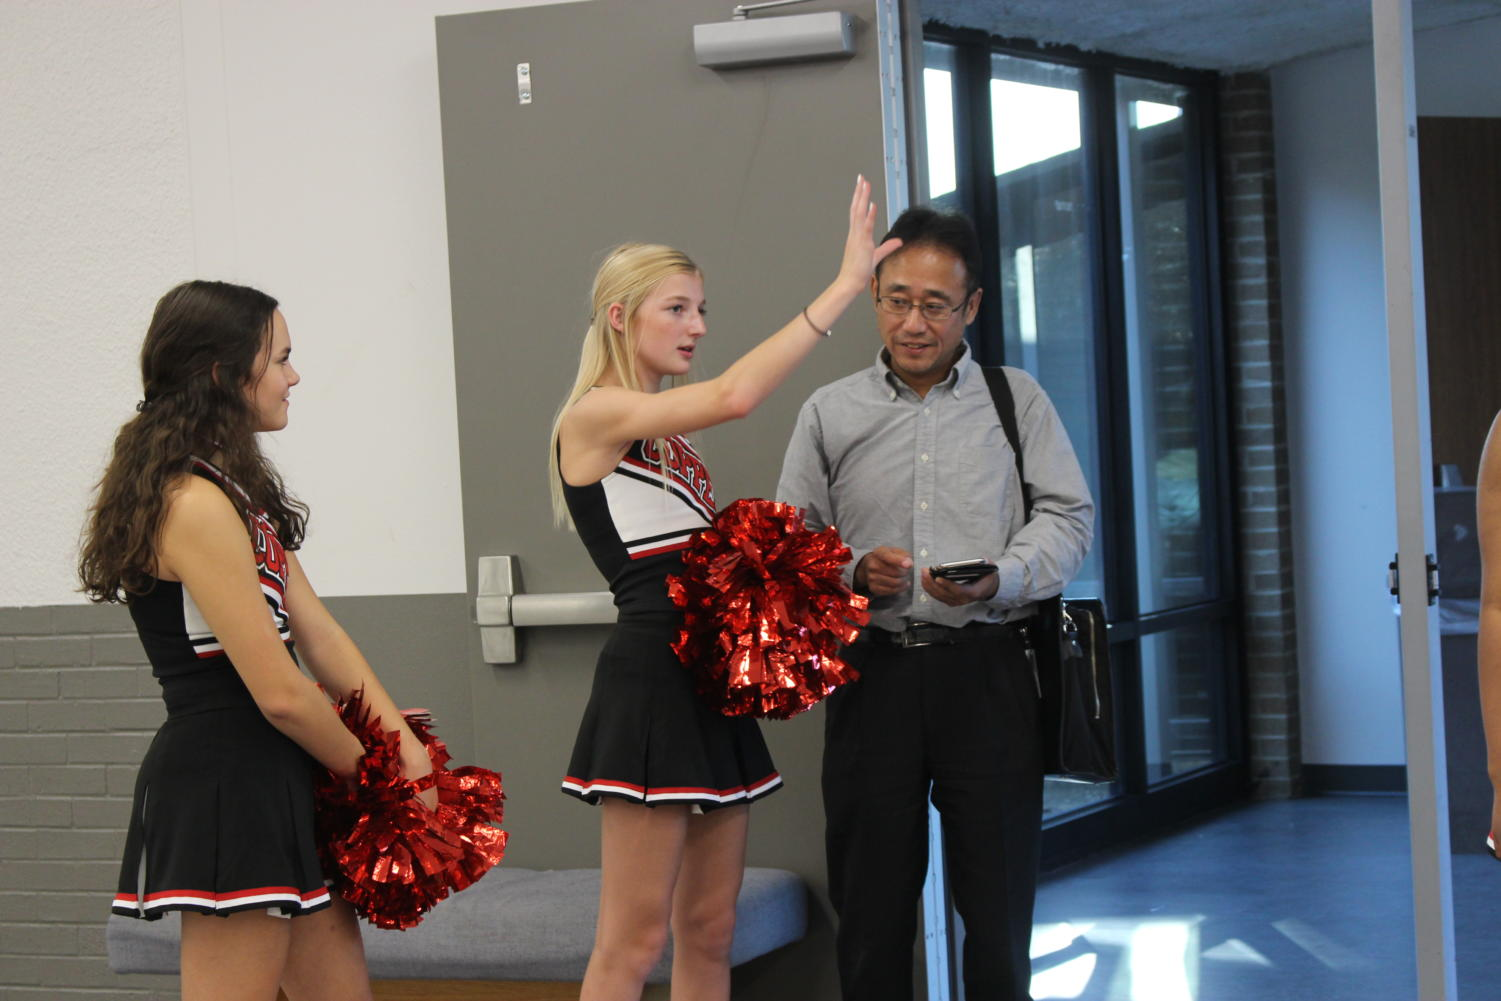 Freshman+cheerleaders+direct+parents+to+the+correct+classrooms.+CHS9+Curriculum+Night+took+place+on+Tuesday+from+6-8+p.m.